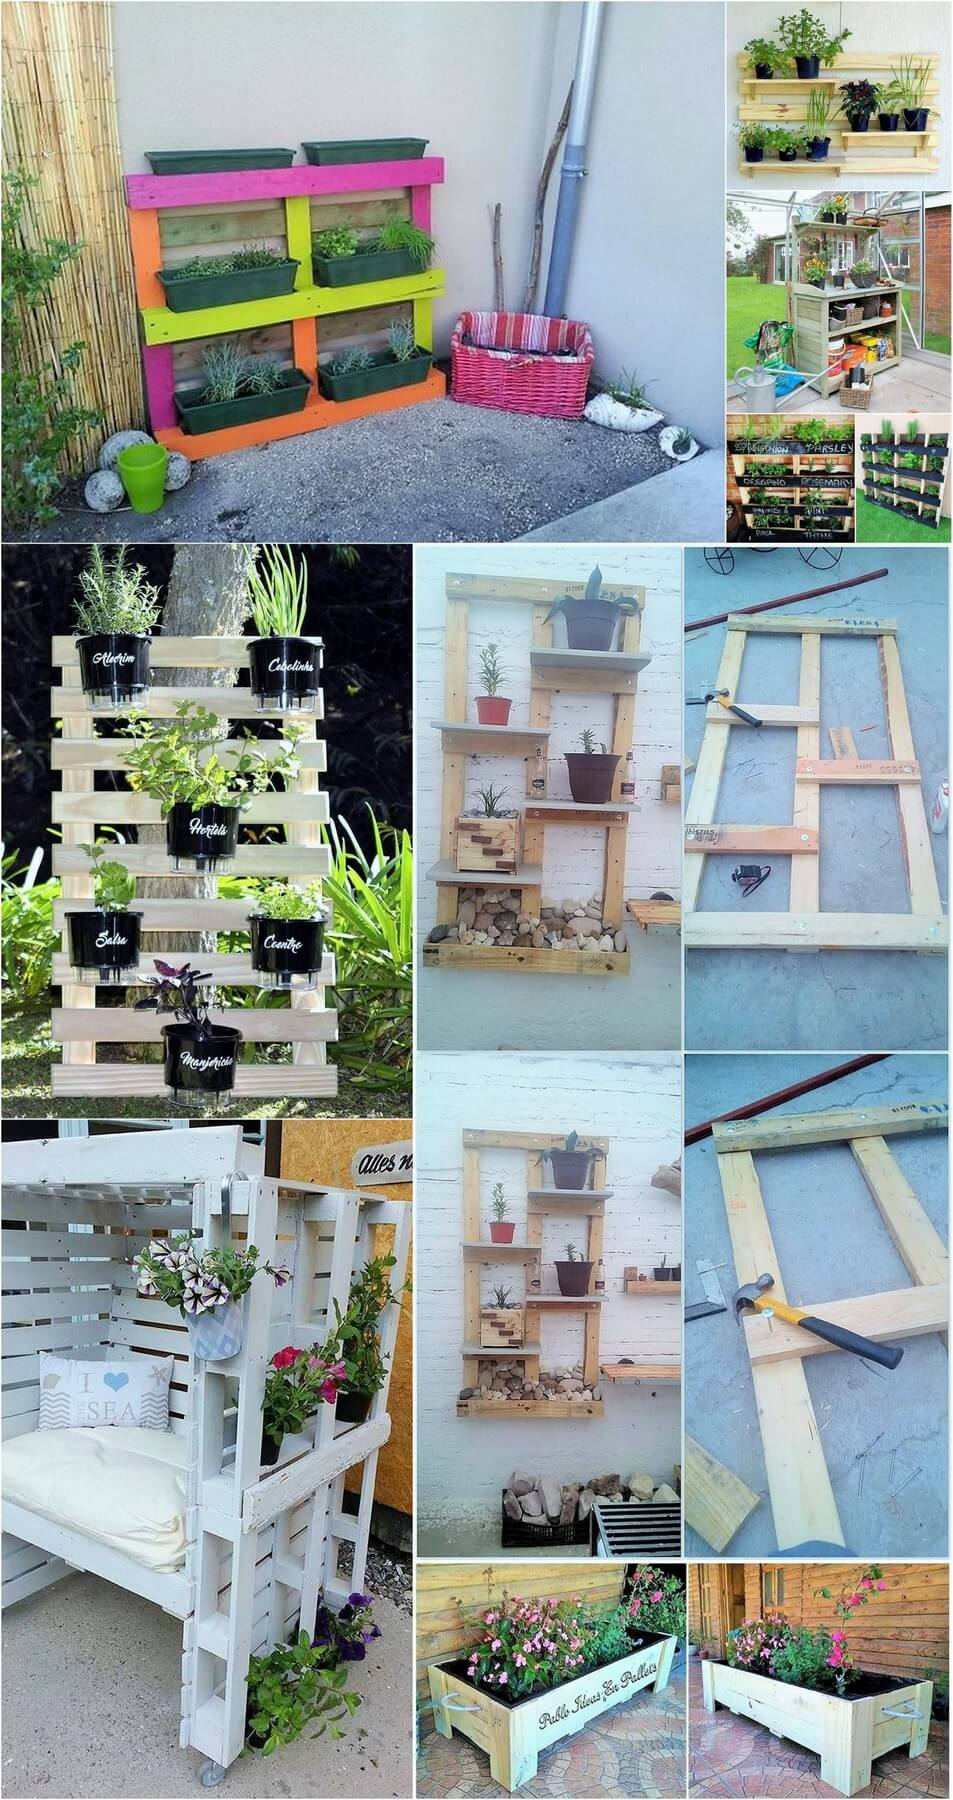 DIY-Pallet-Garden-Planter-Ideas